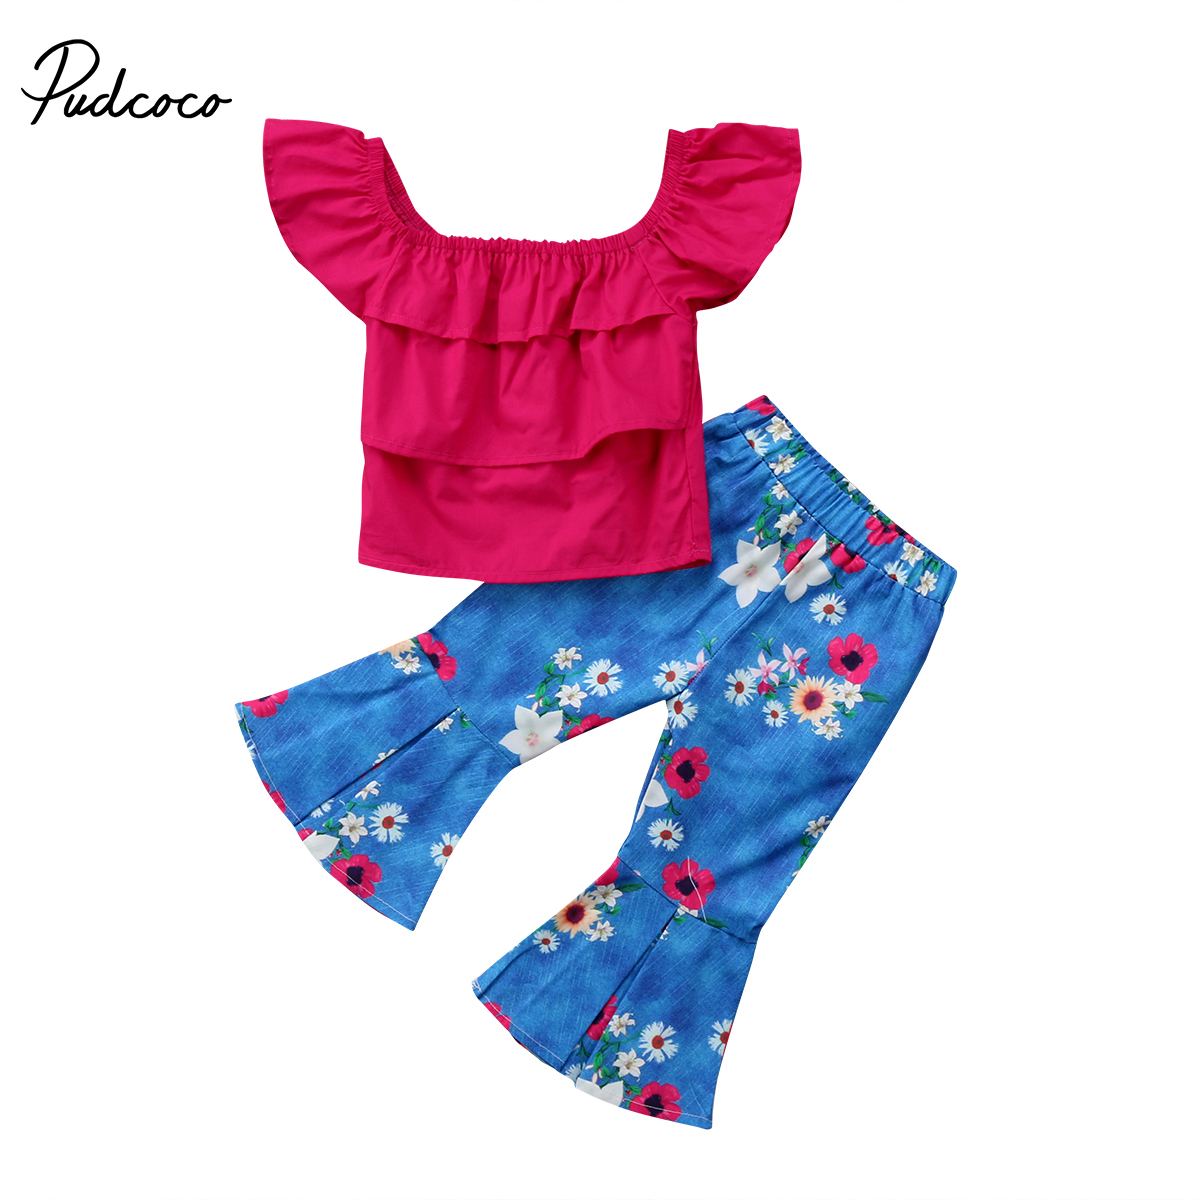 2018 Brand New 2Pcs Toddler Infant Baby Kid Girl Off Shoulder Top layered Tank Flare Pants Outfit Set Children Summer Clothing summer infant baby girl flower crop top shorties pants outfit sunsuit